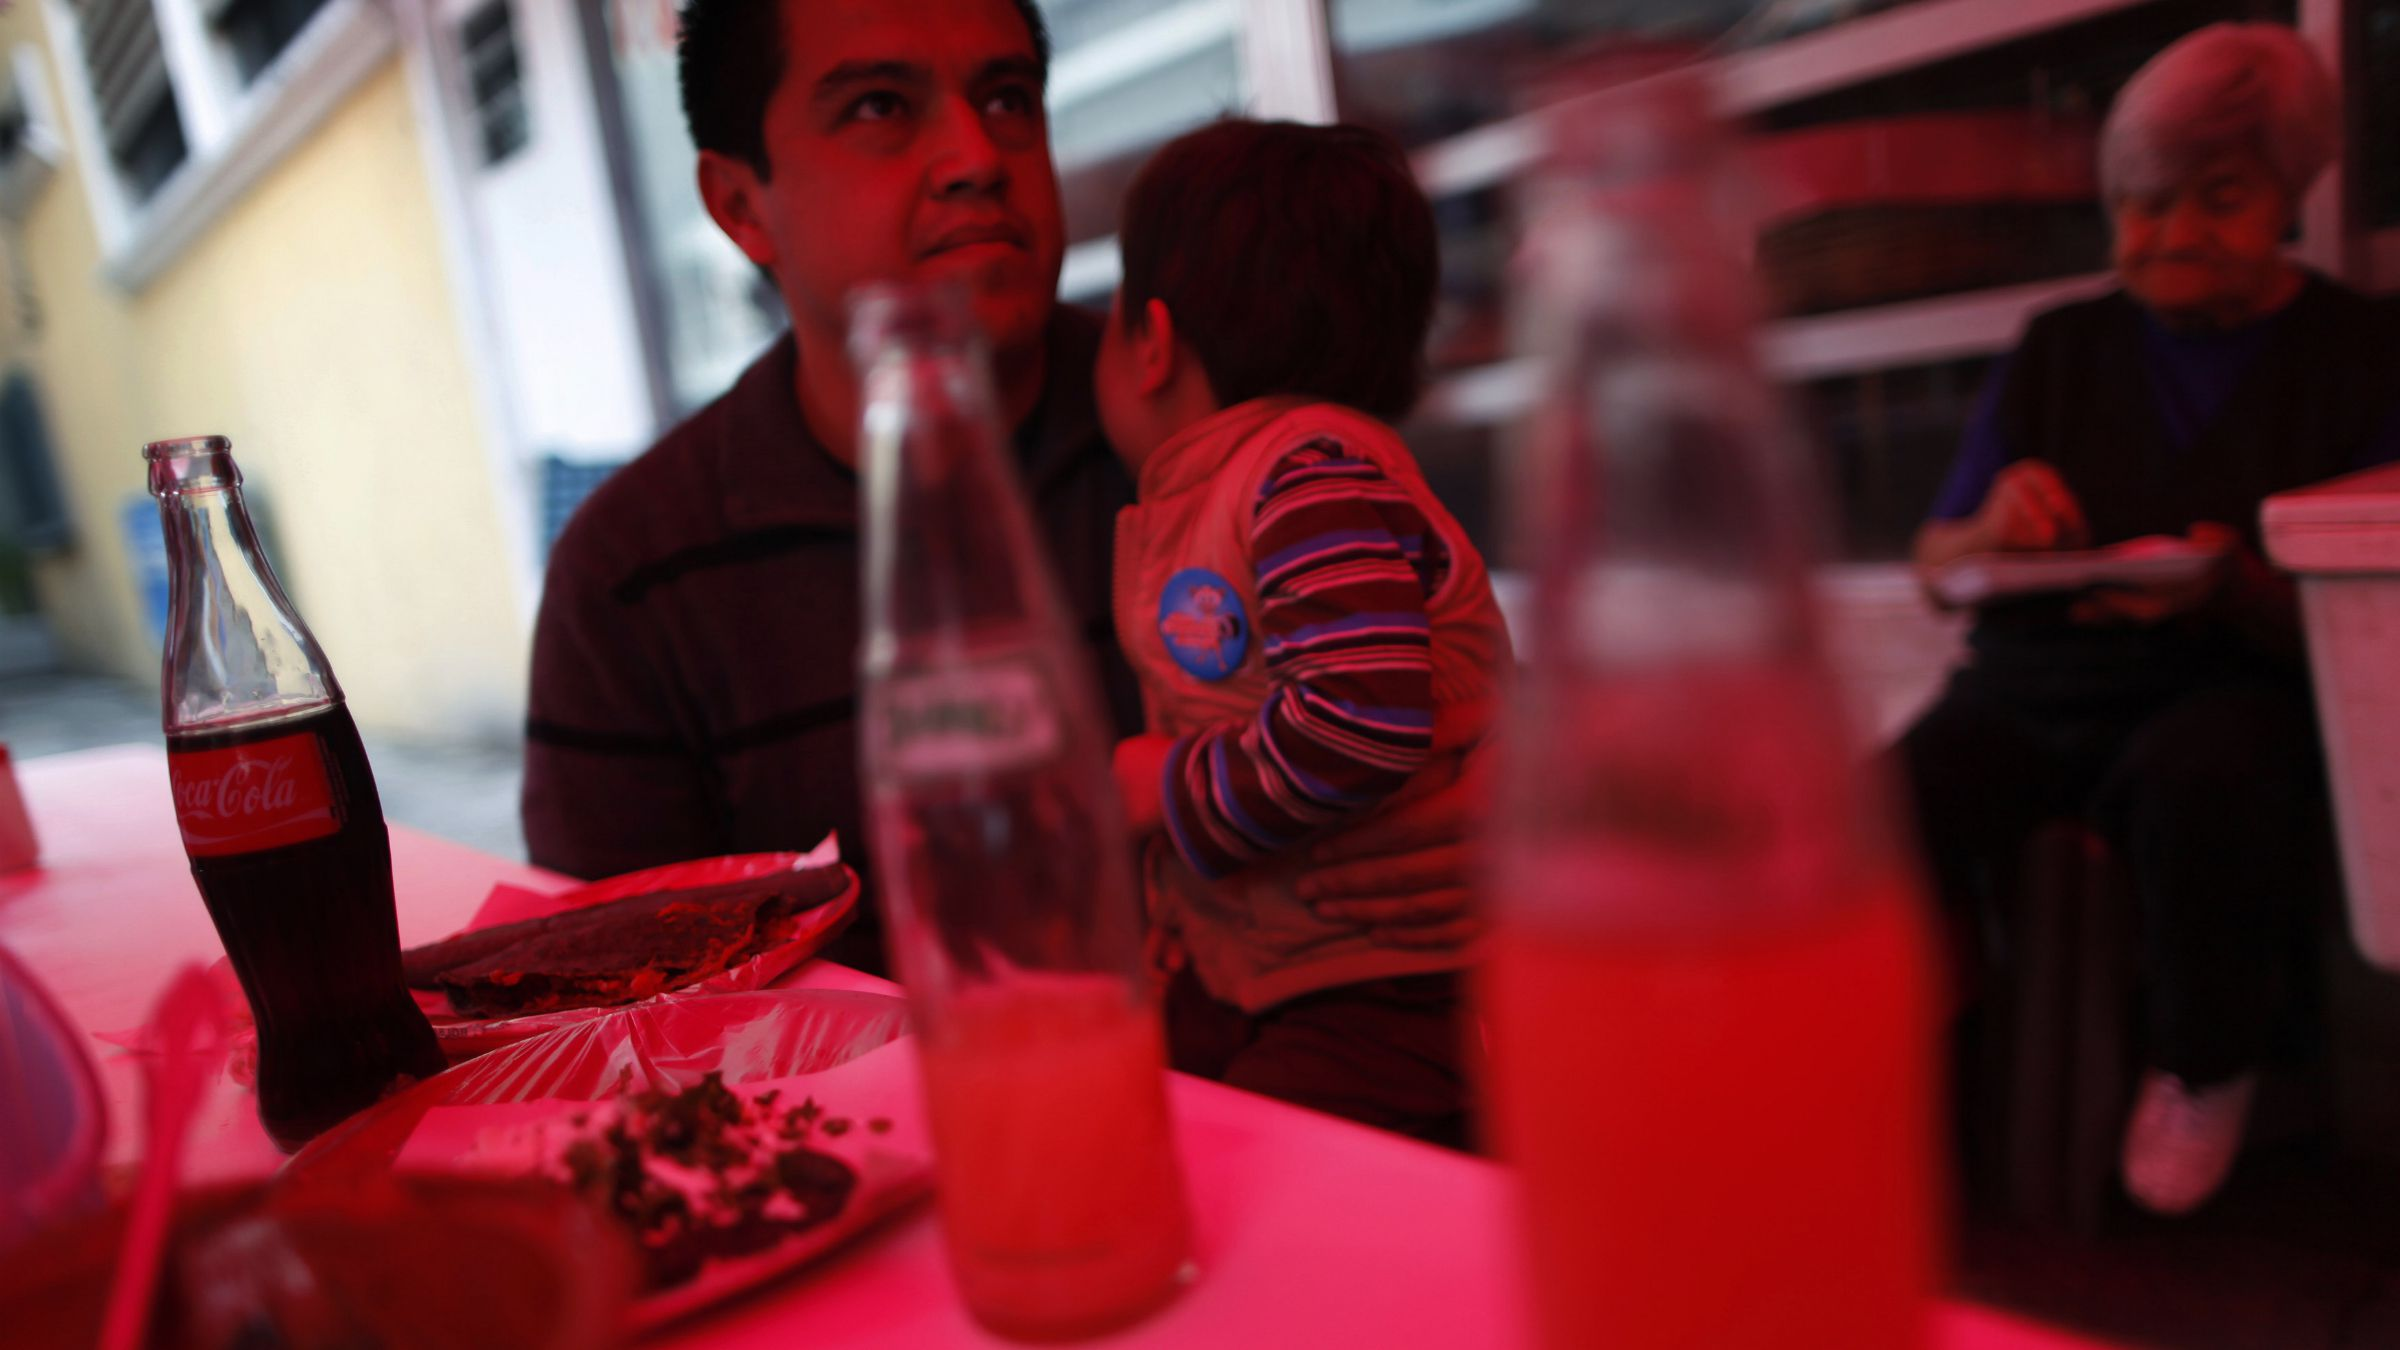 A man and a child eat next to bottled drinks at a food stand in Mexico City September 10, 2013. Mexico's President Enrique Pena Nieto's tax reform proposals appear toughest on Mexico's bottlers, who would be hit by a levy that the government hopes will collect close to $1 billion a year. The government plans to apply a 1 peso per liter ($0.076) excise on sugary drinks, weighing on bottlers like Coca-Cola FEMSA